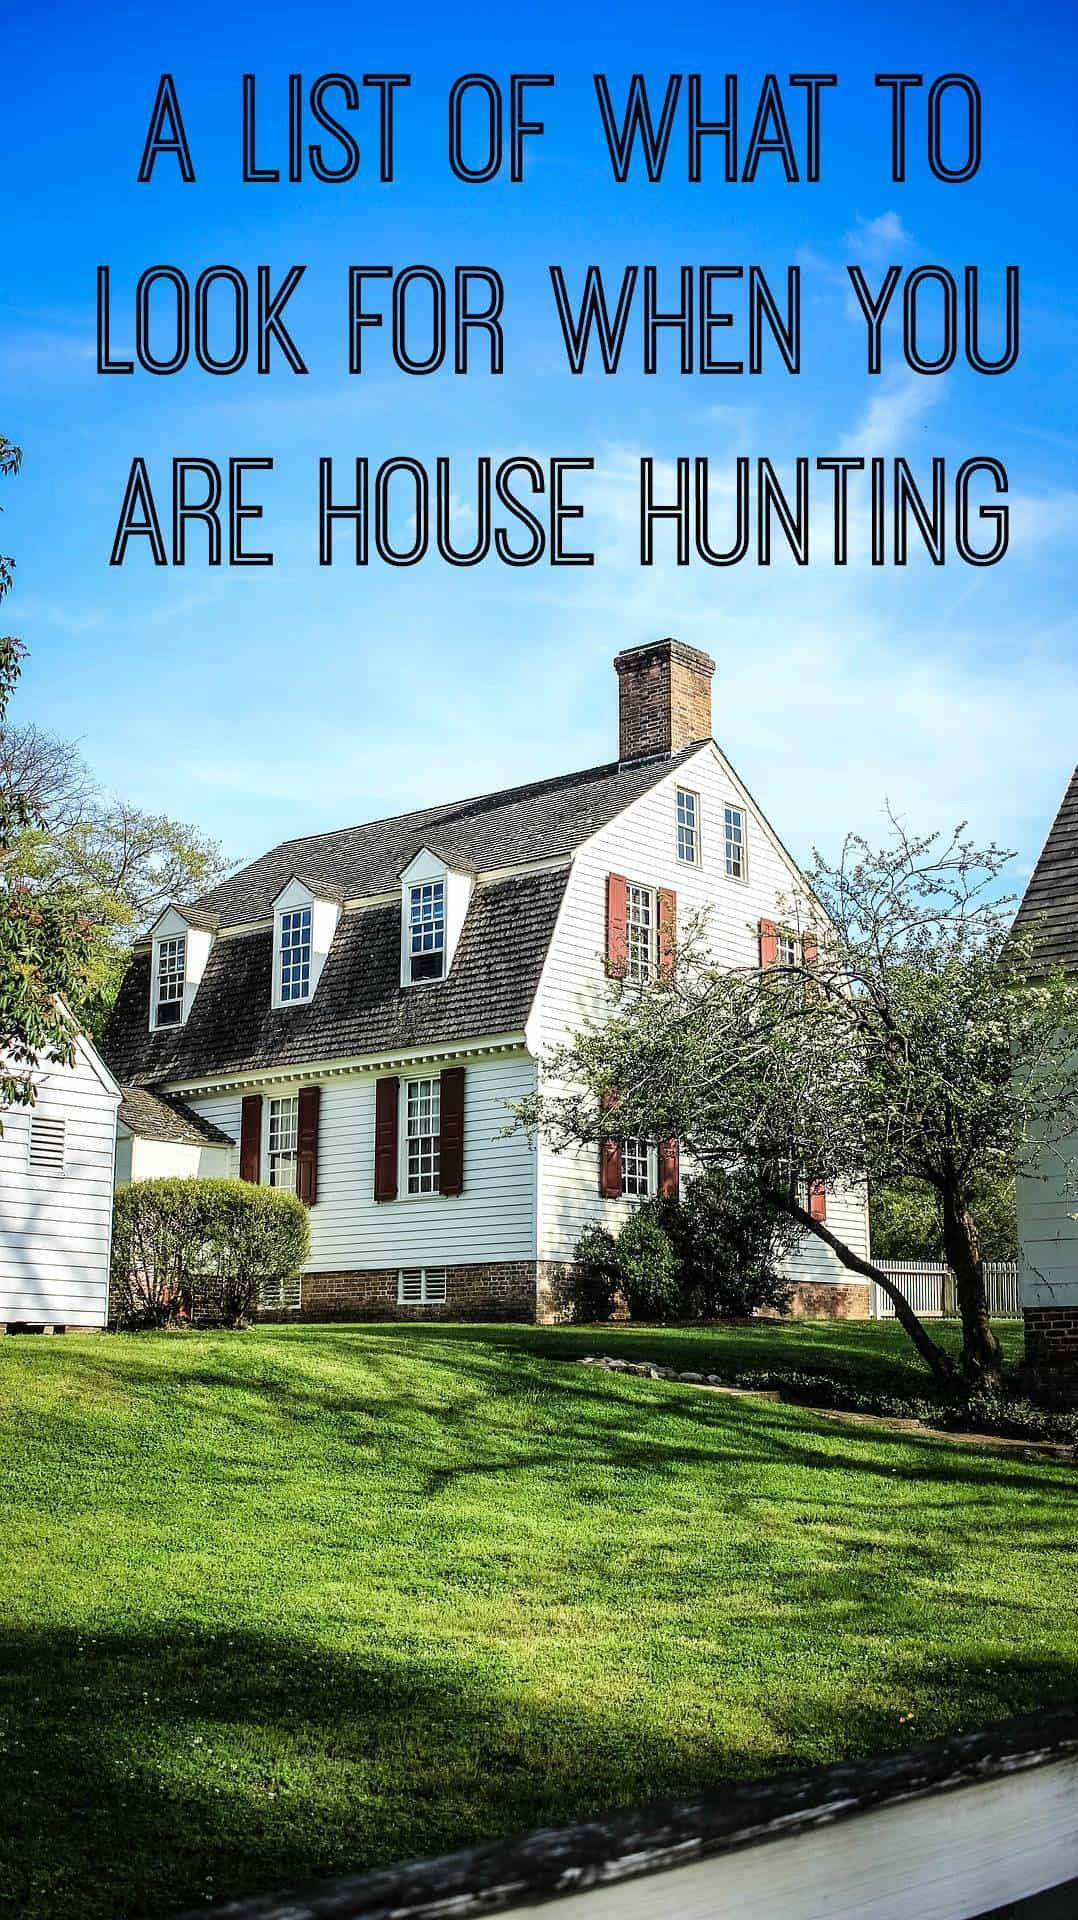 What to look for when you are house hunting